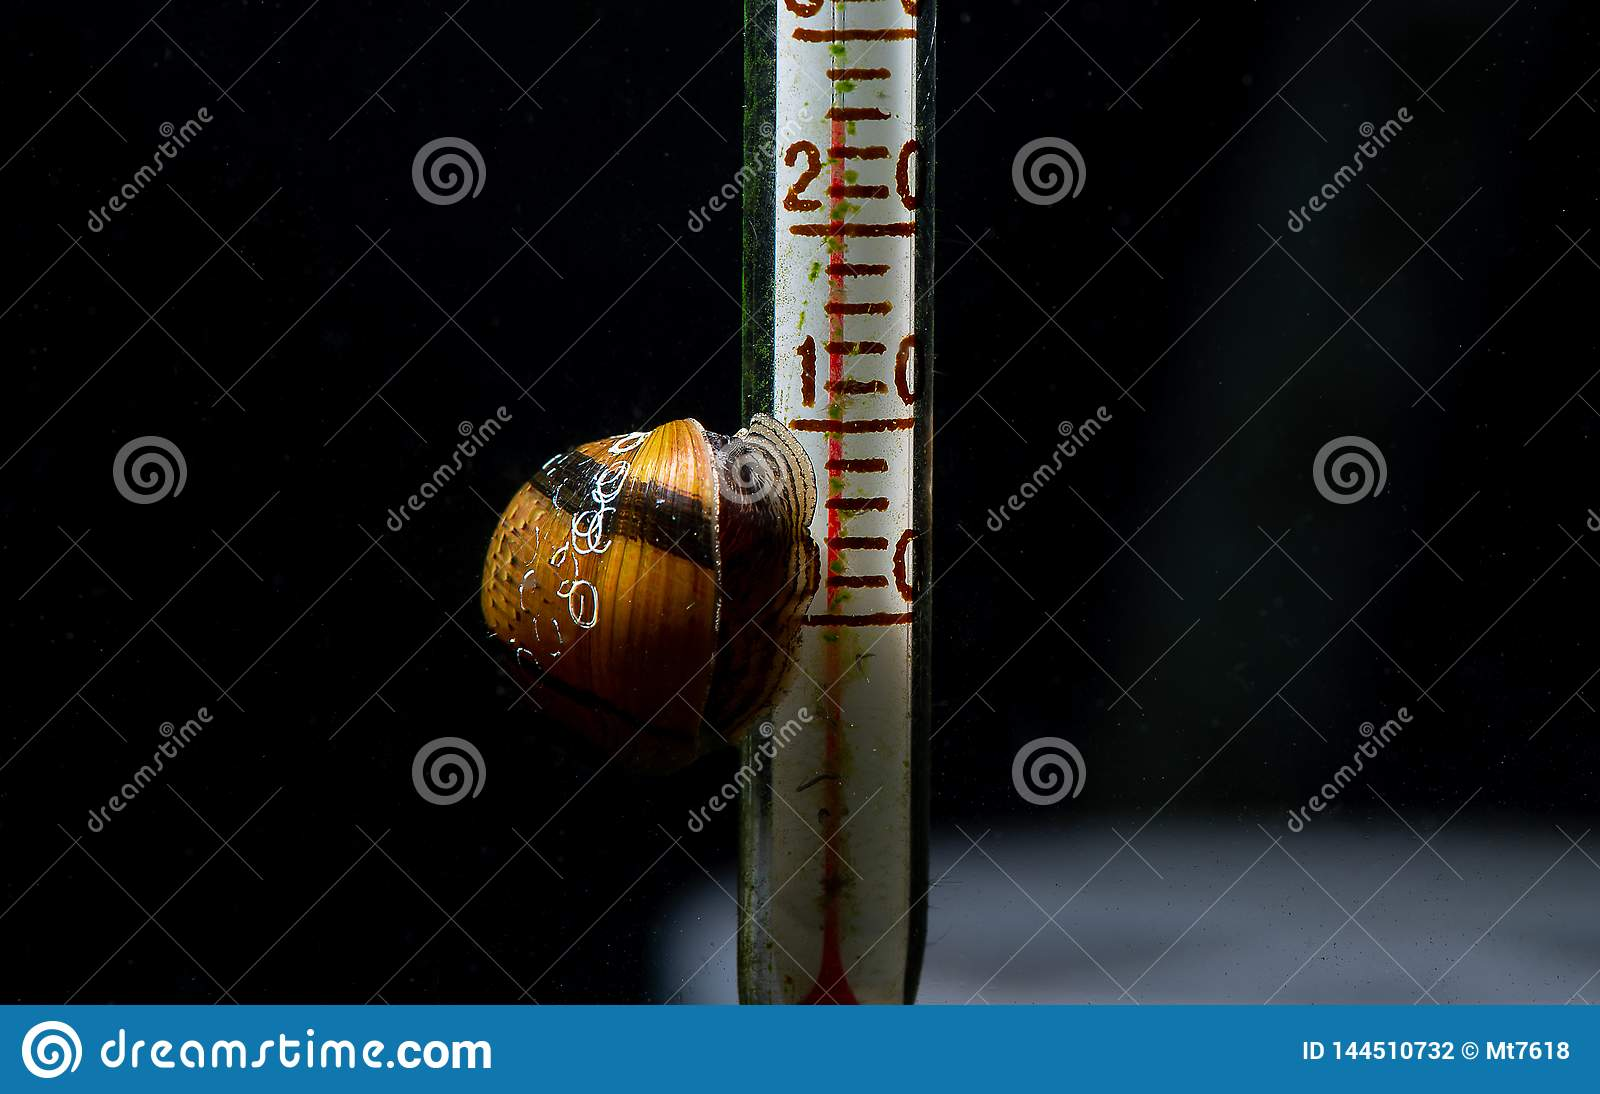 Horn snail eat lichen on thermometer with dark background